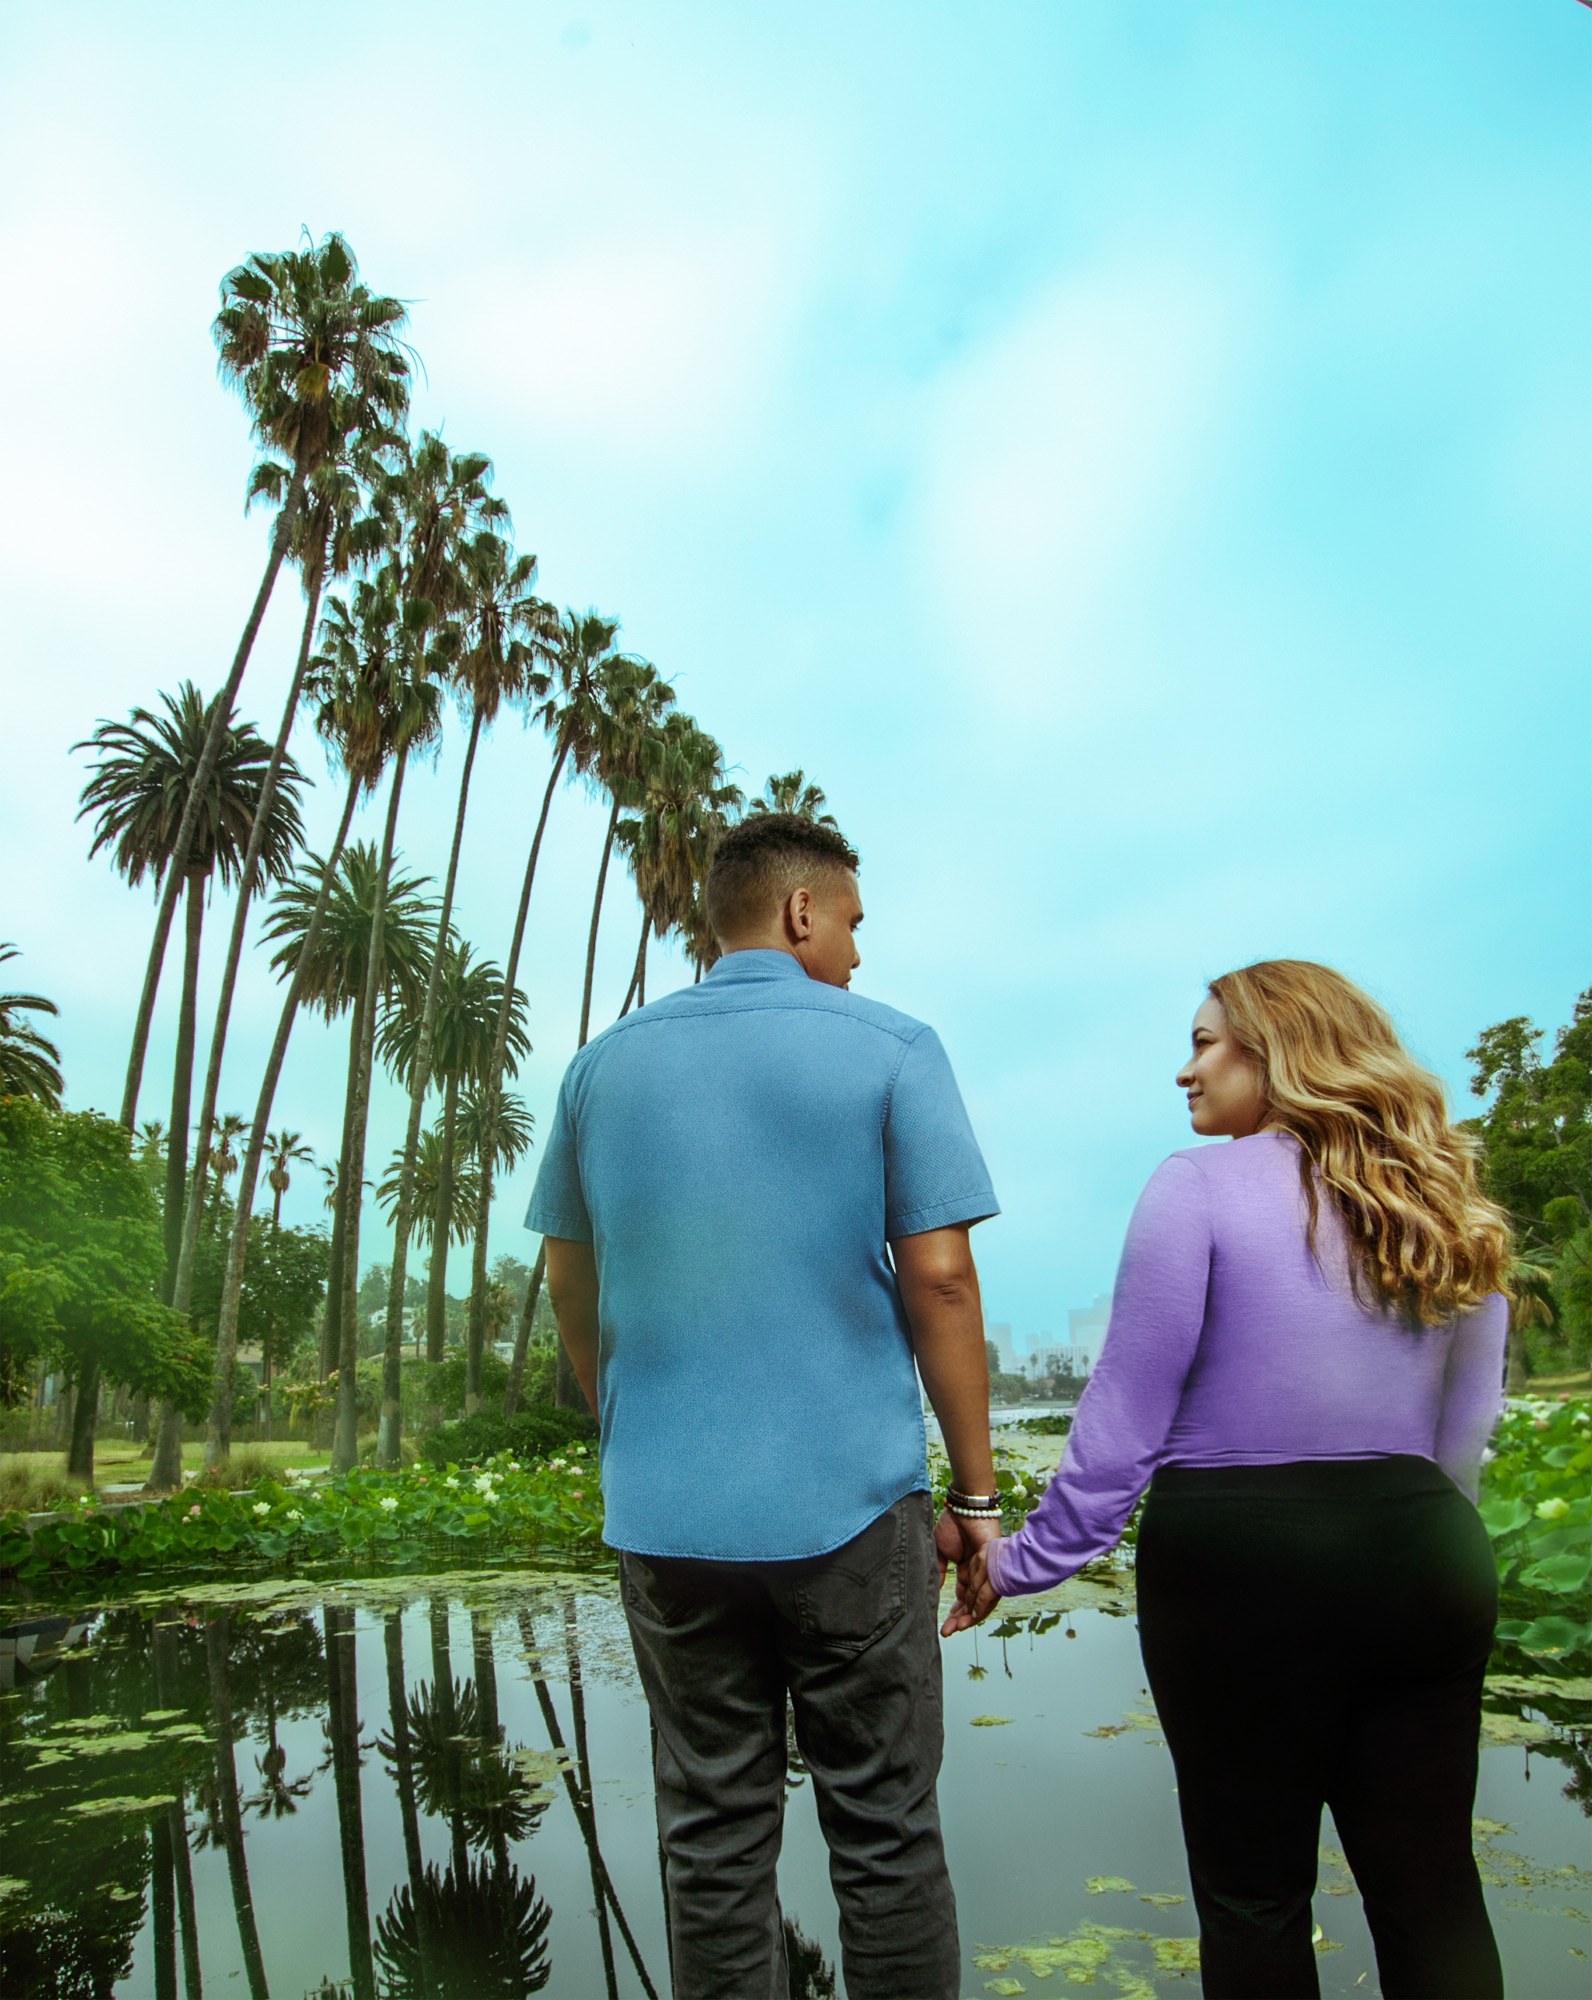 Therapists, teletherapy California, Trauma Informed Care, Depression and Anxiety, Grief and Loss, Parenting Behavioral Issues, Premarital Counseling